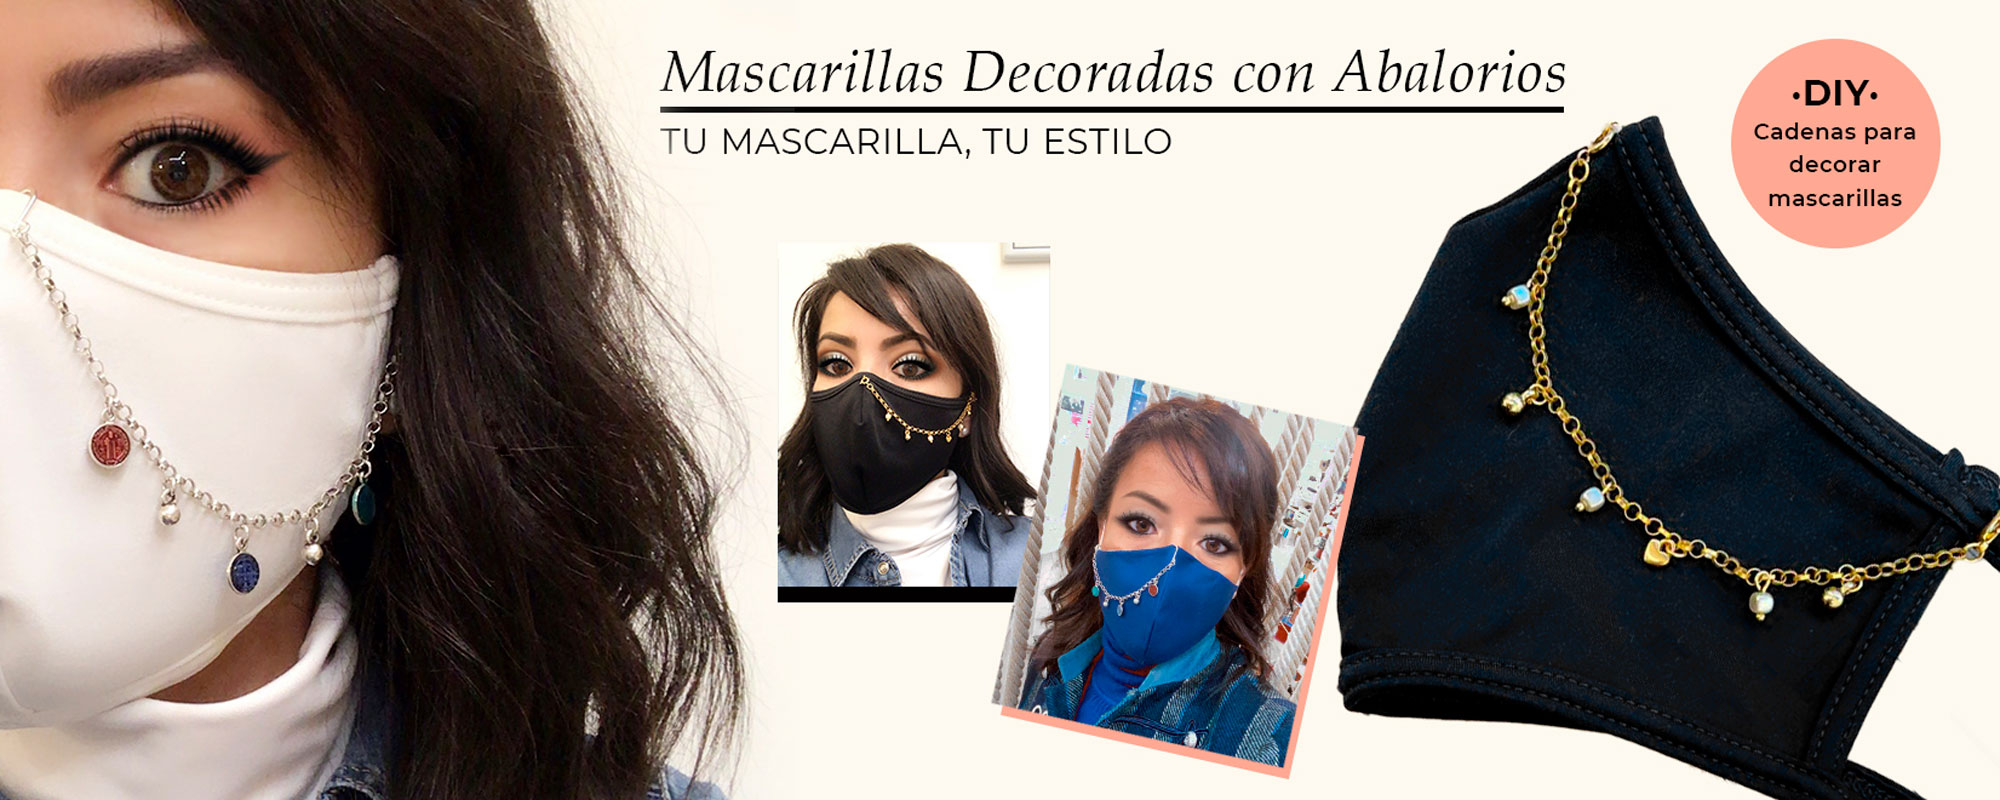 mascarillas decoradas con abalorios